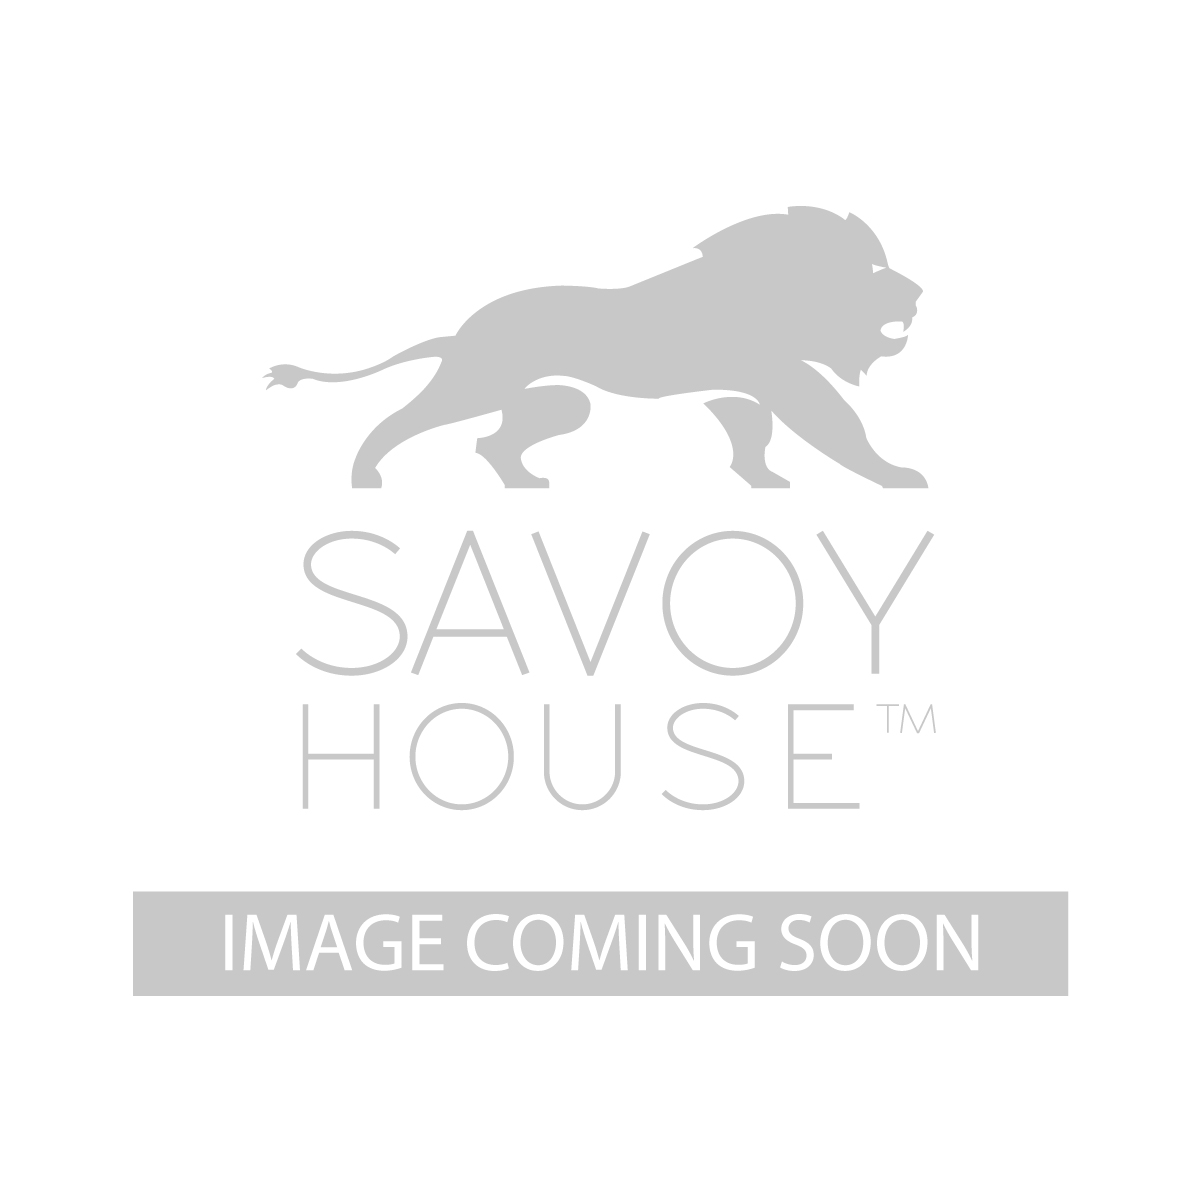 1 9251 5 187 hasting 5 light chandelier by savoy house for Savoy house com